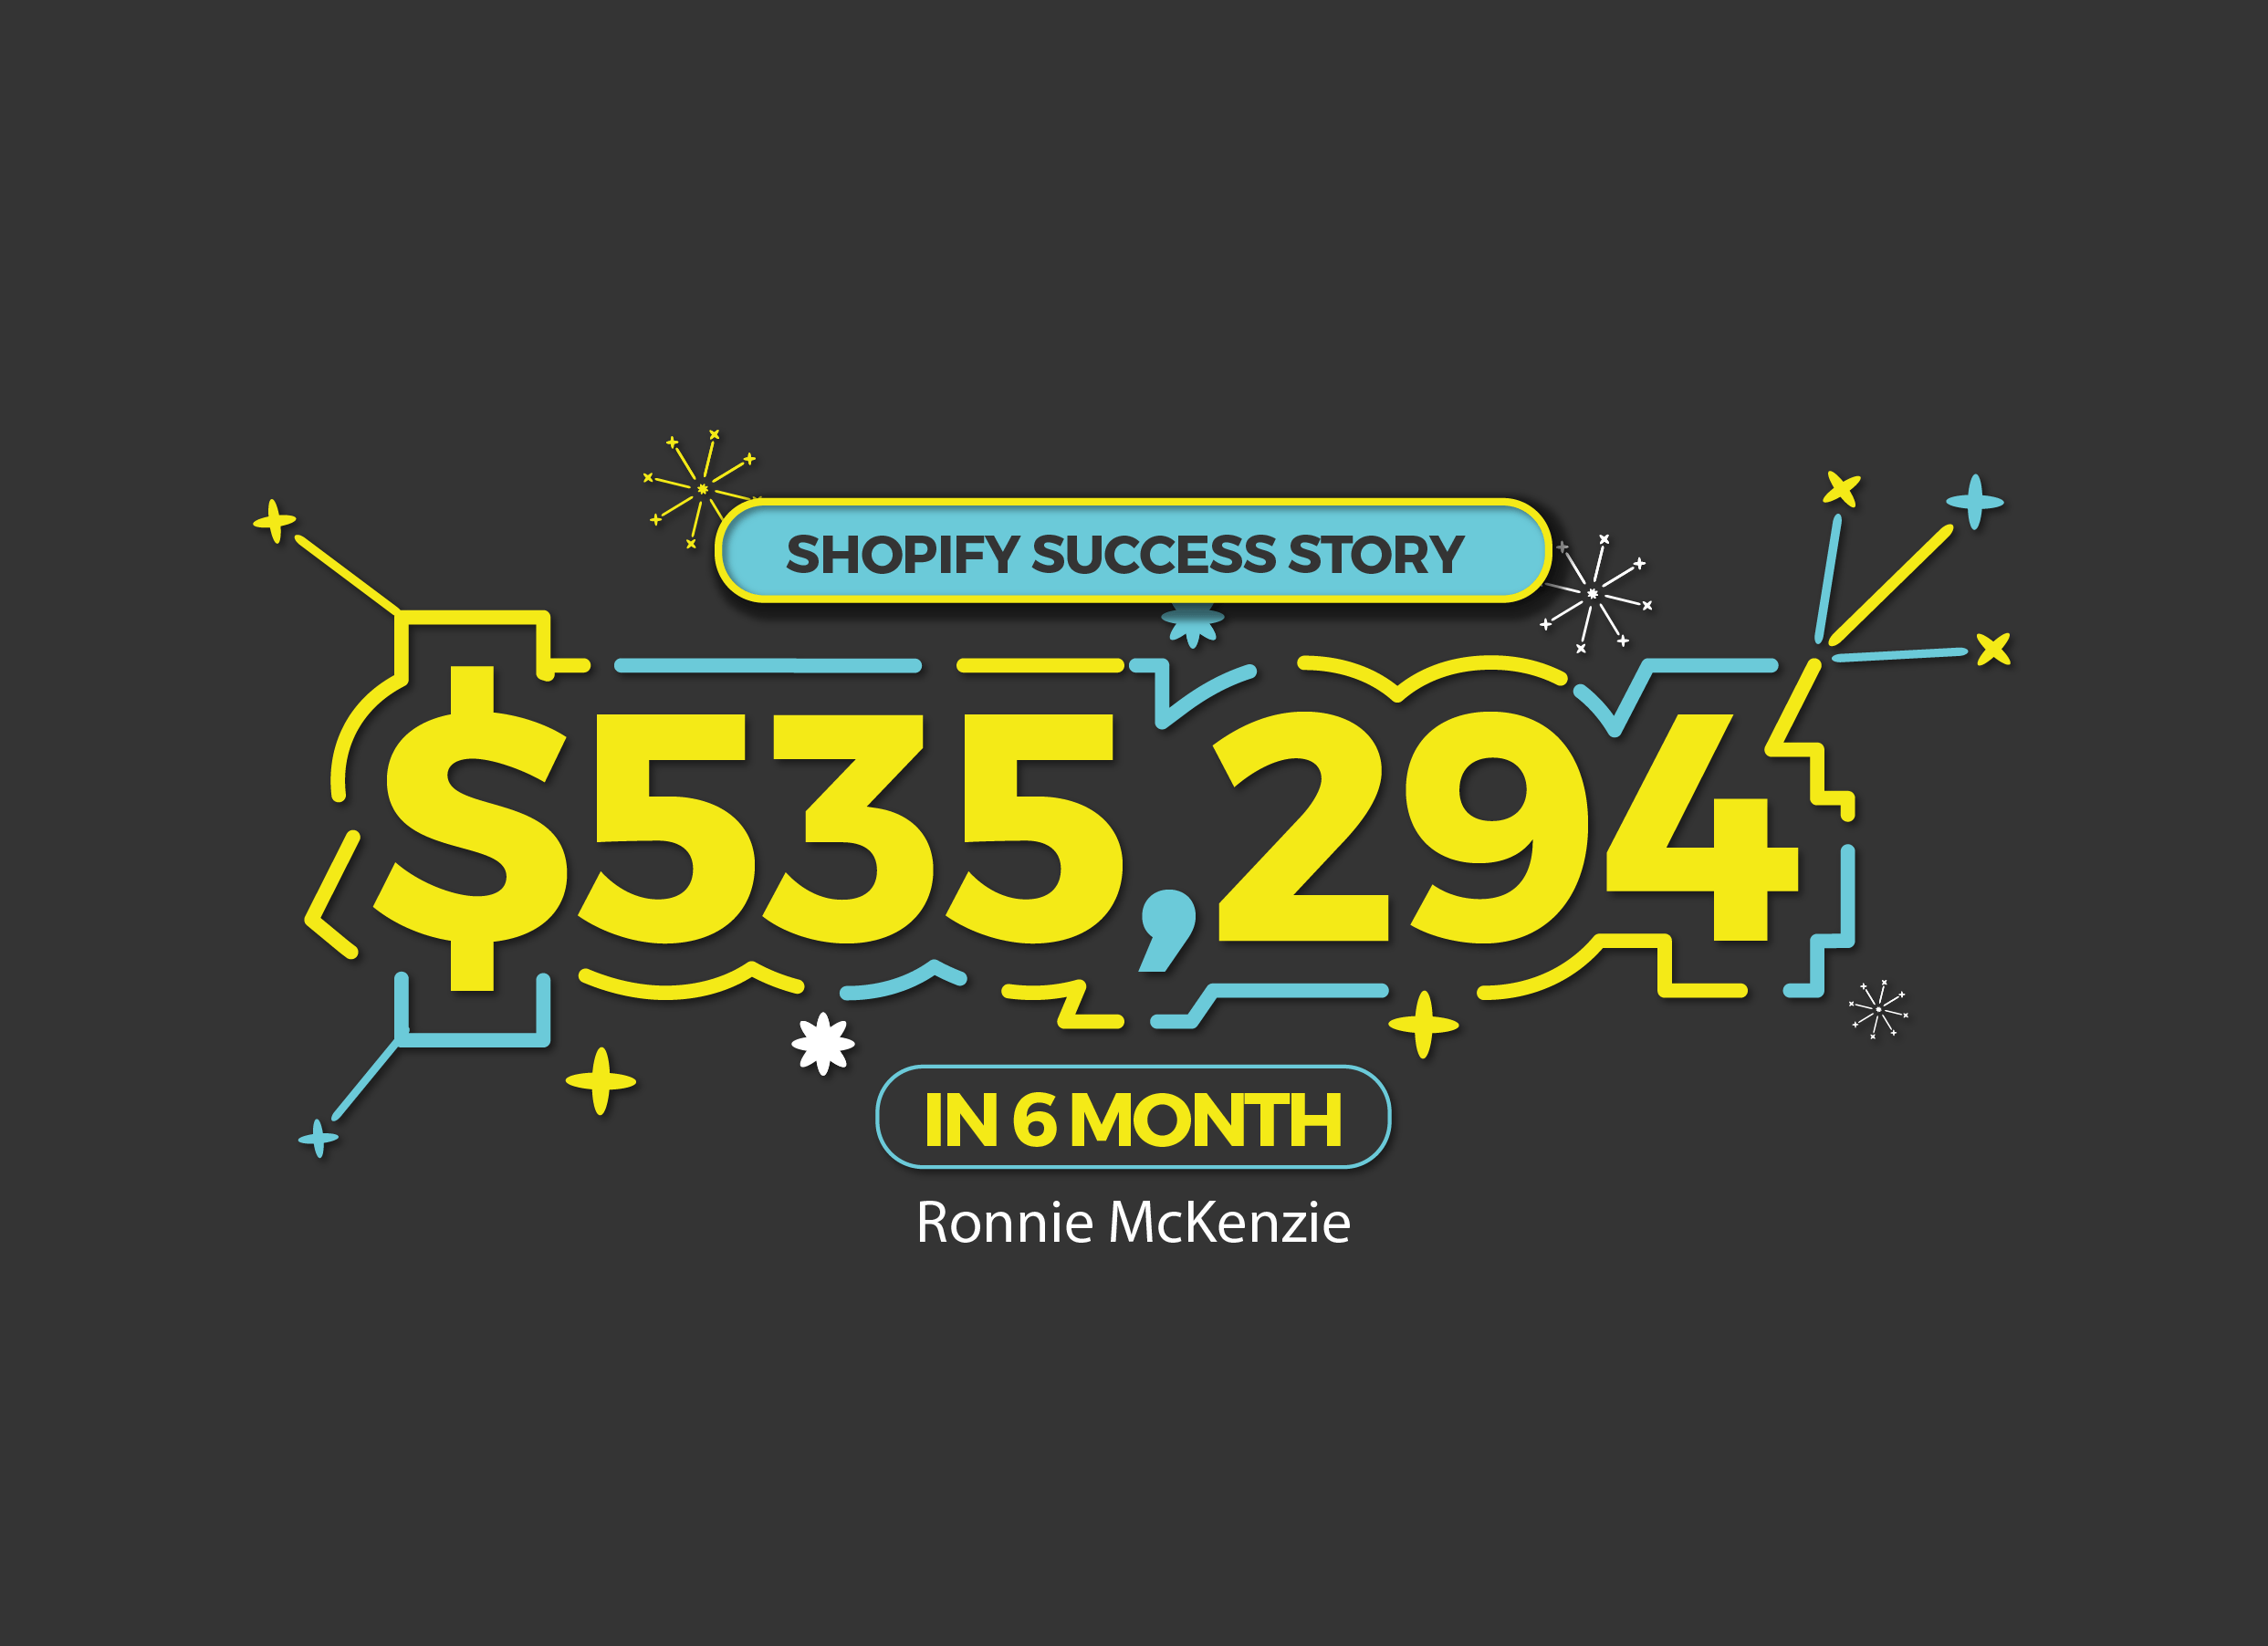 My Shopify Success Story And How I Made 535 294 In 6 Months